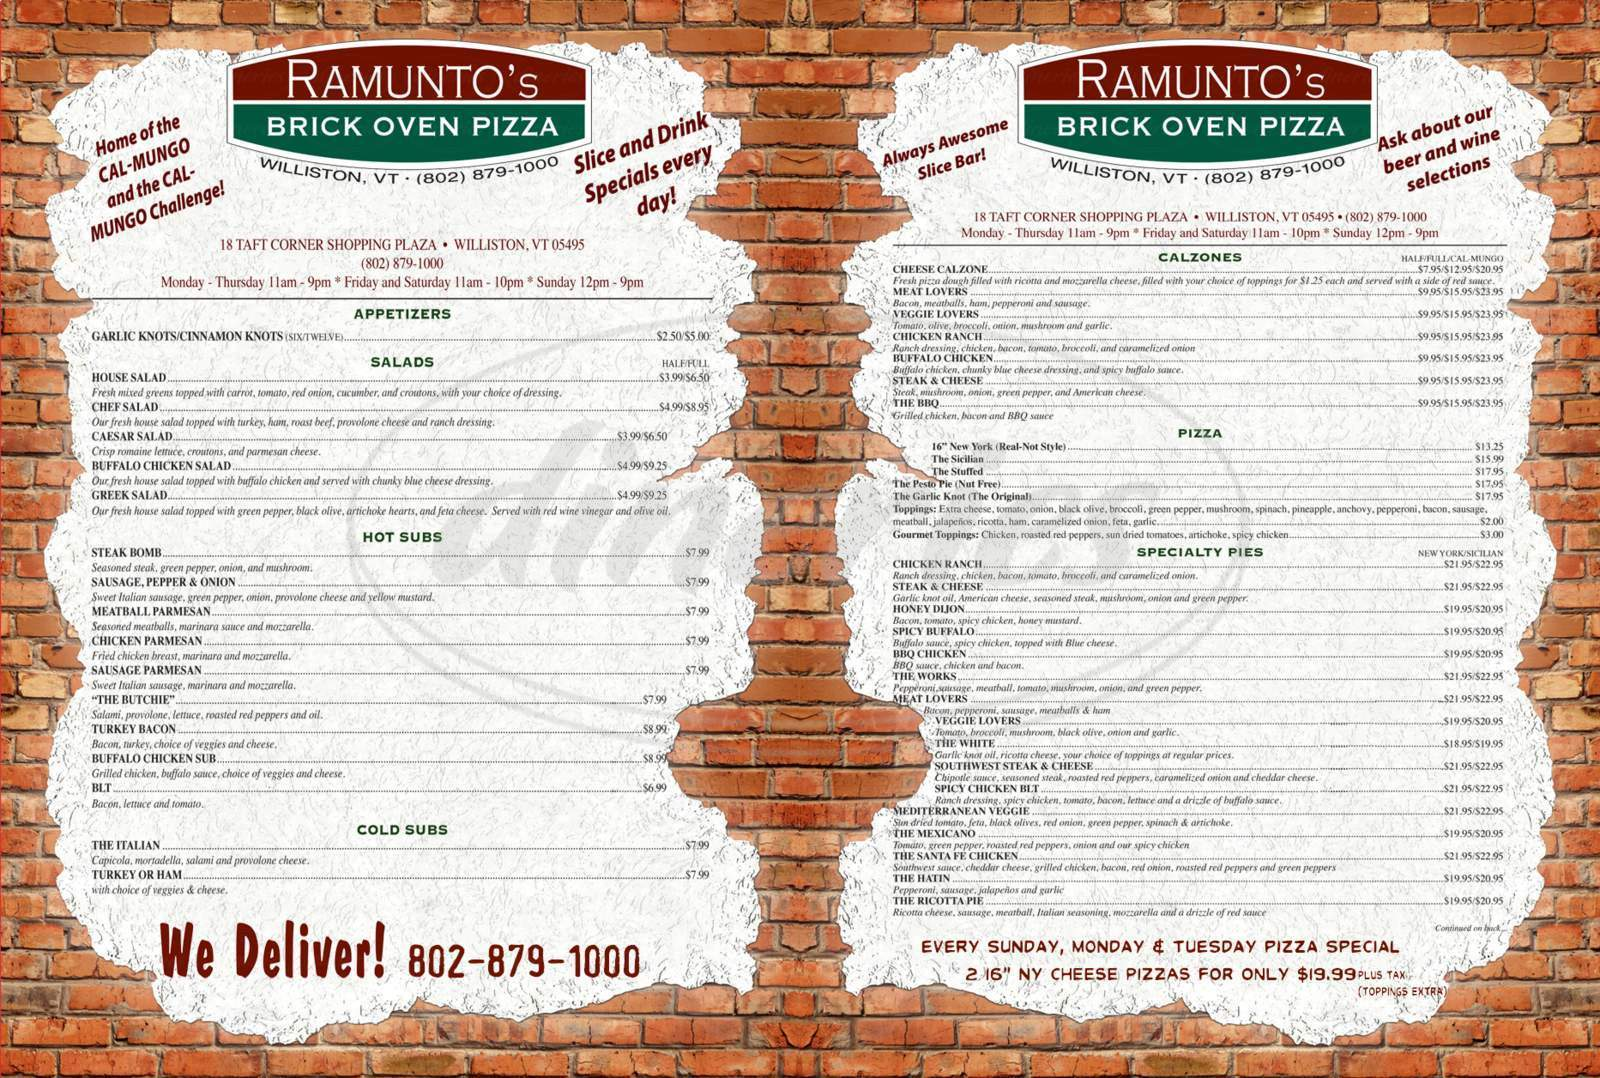 menu for Ramunto's Brick Oven Pizza